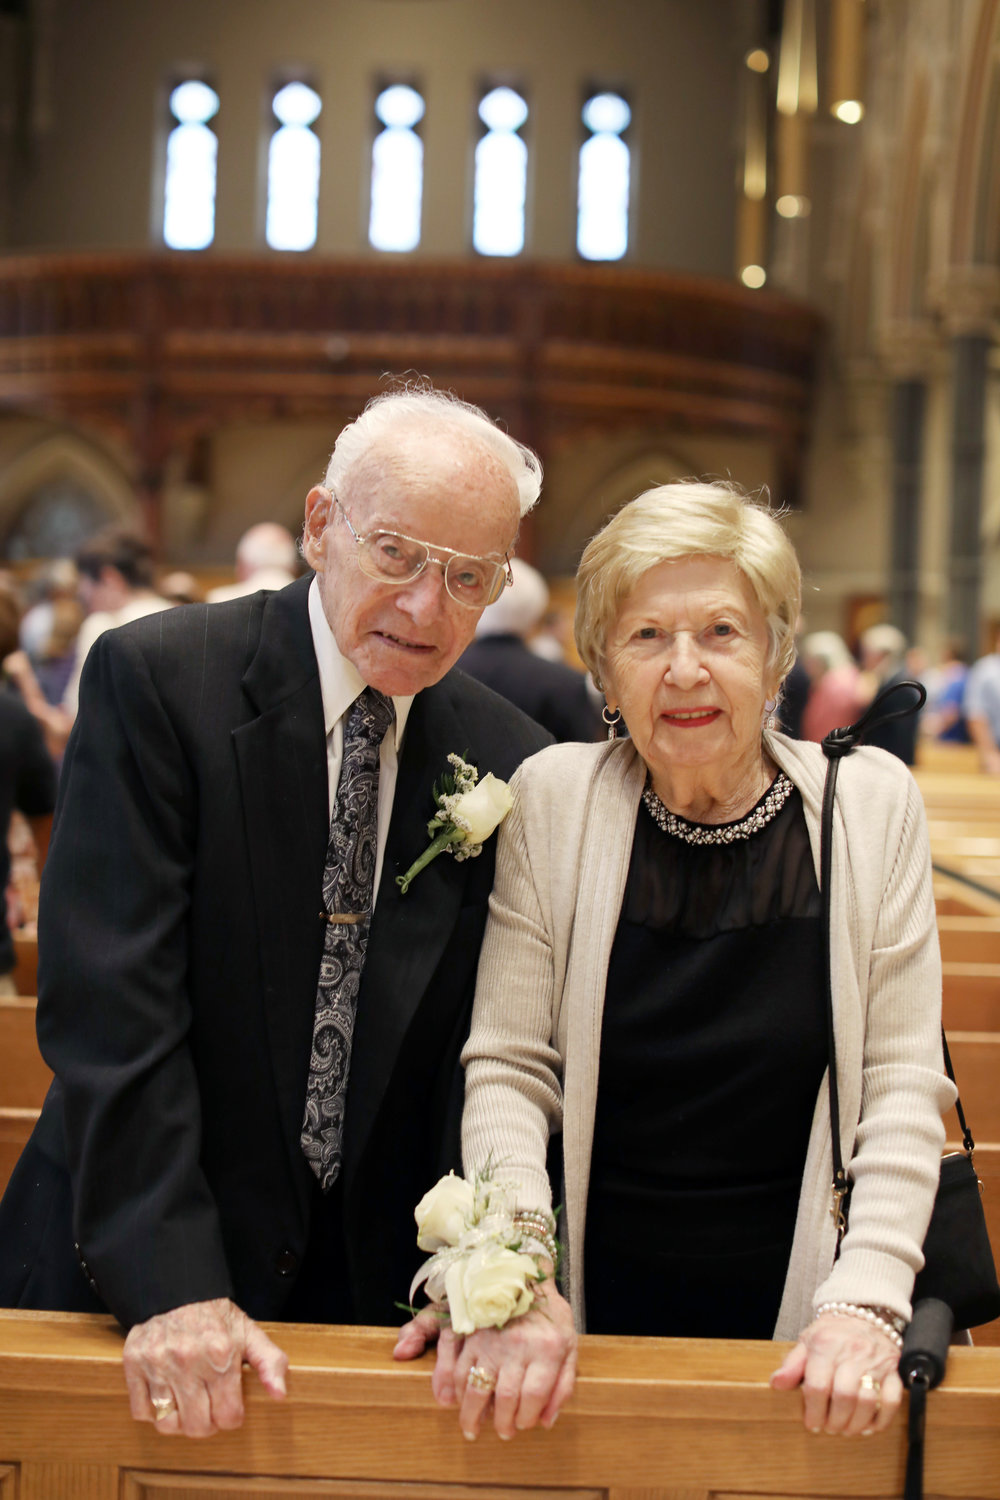 Nicola and Santa Mainelli celebrate 75 years of marriage.